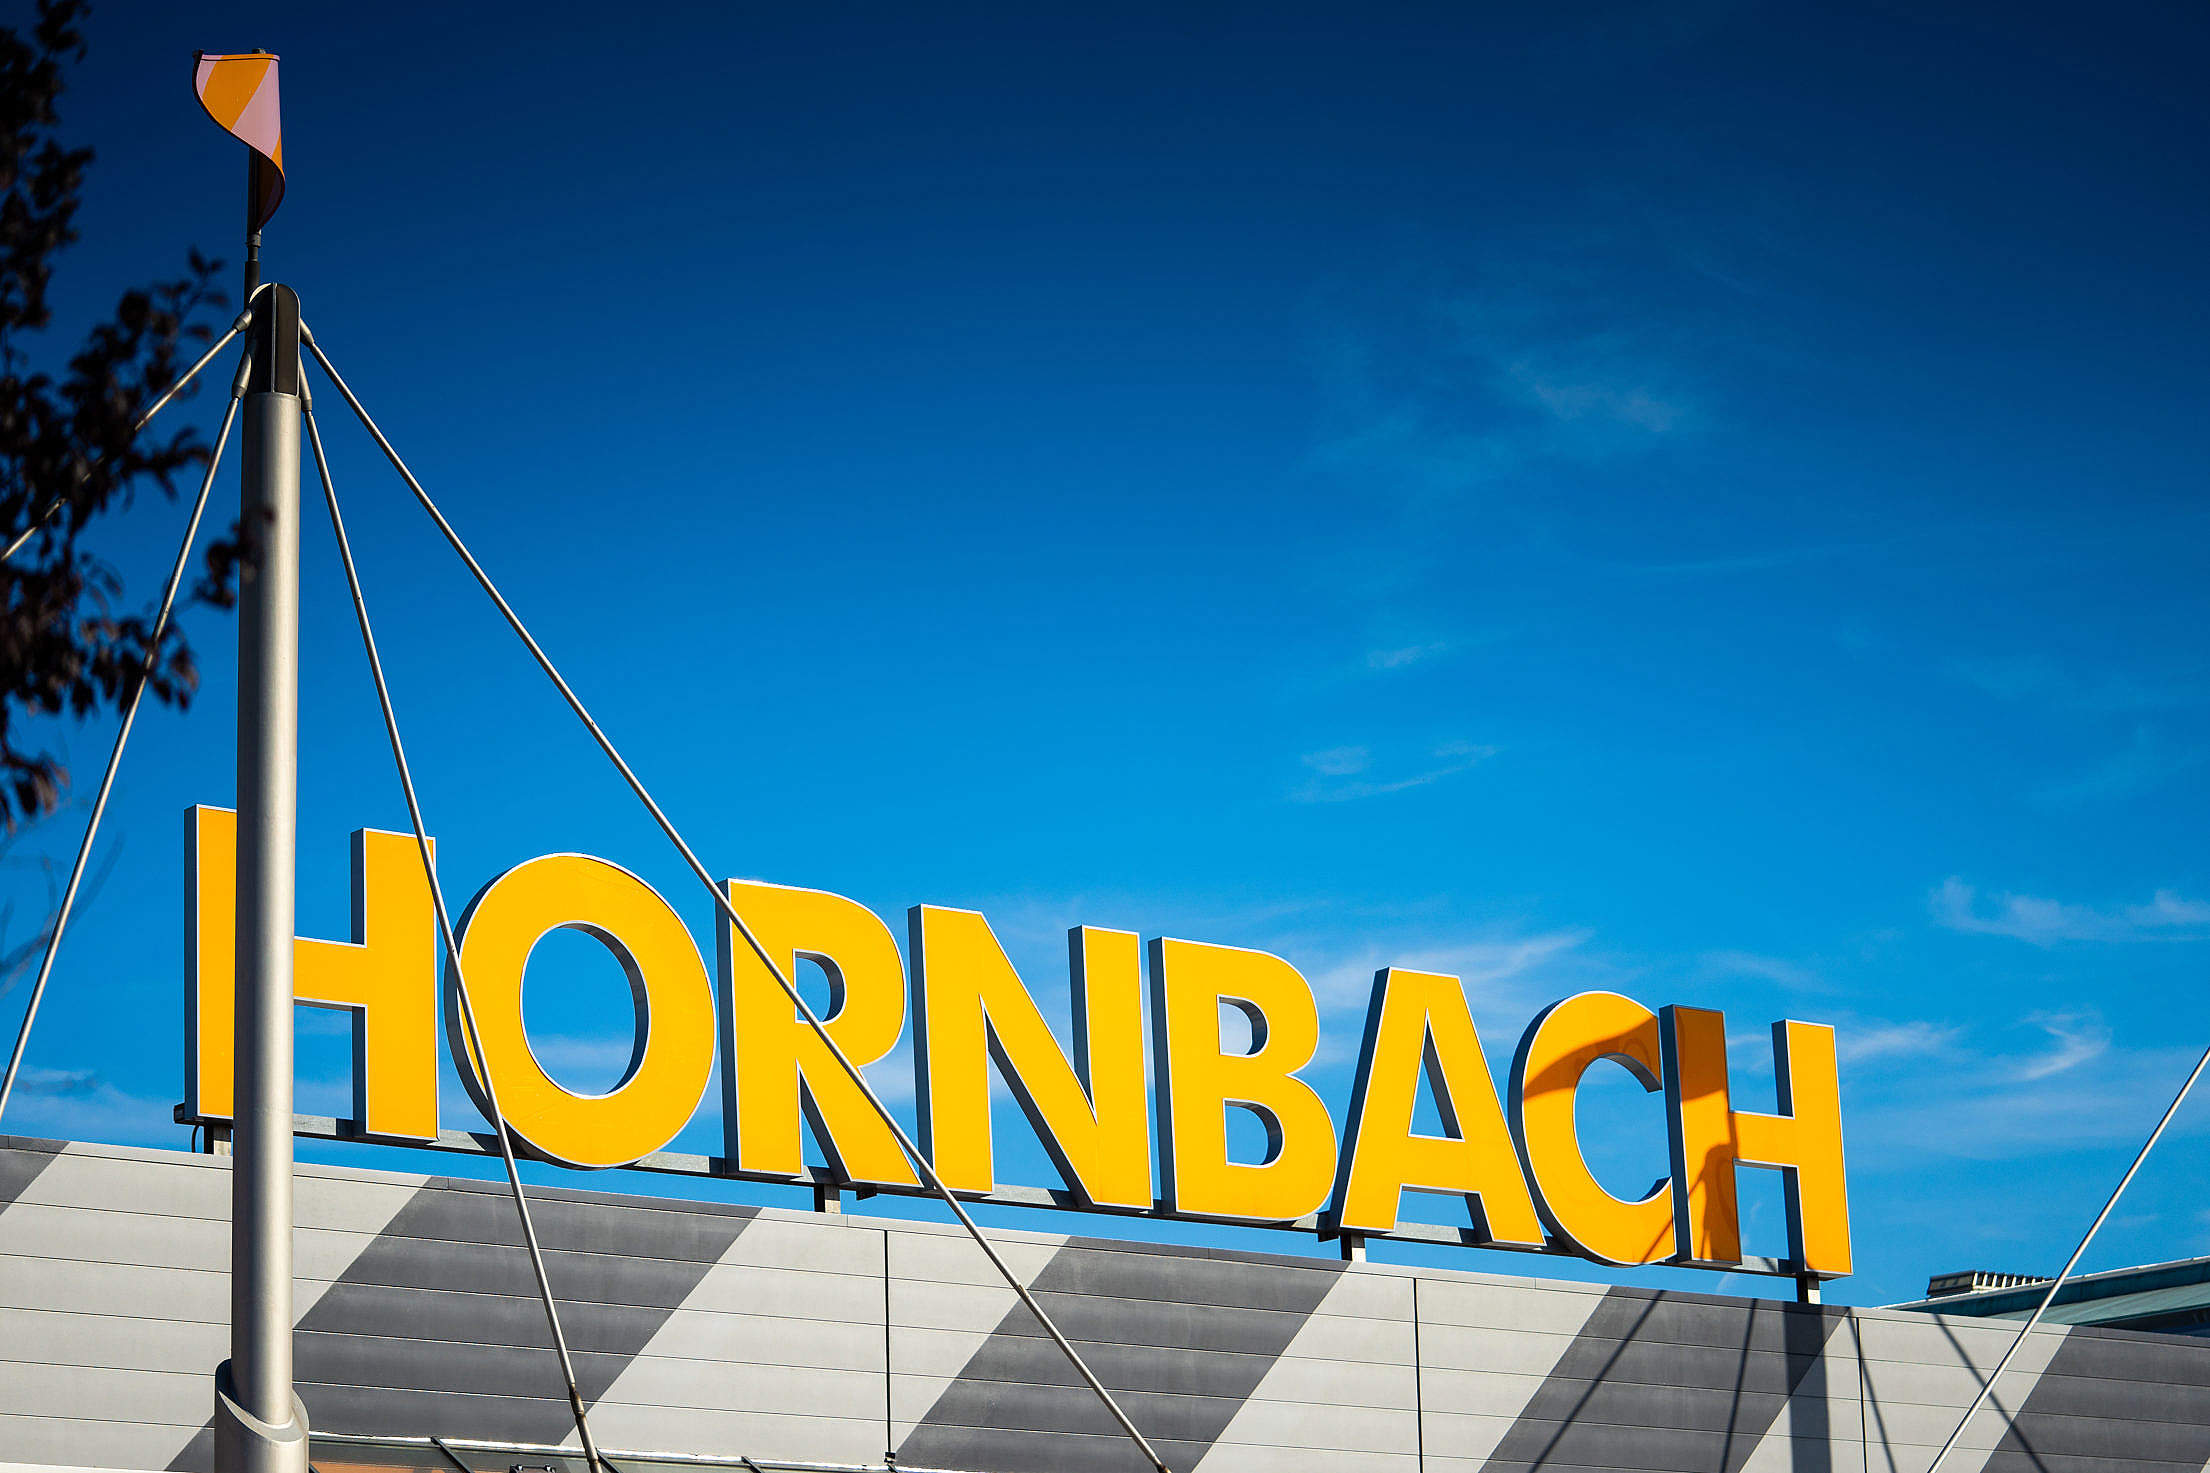 Hornbach Hobby Market Logo Free Stock Photo